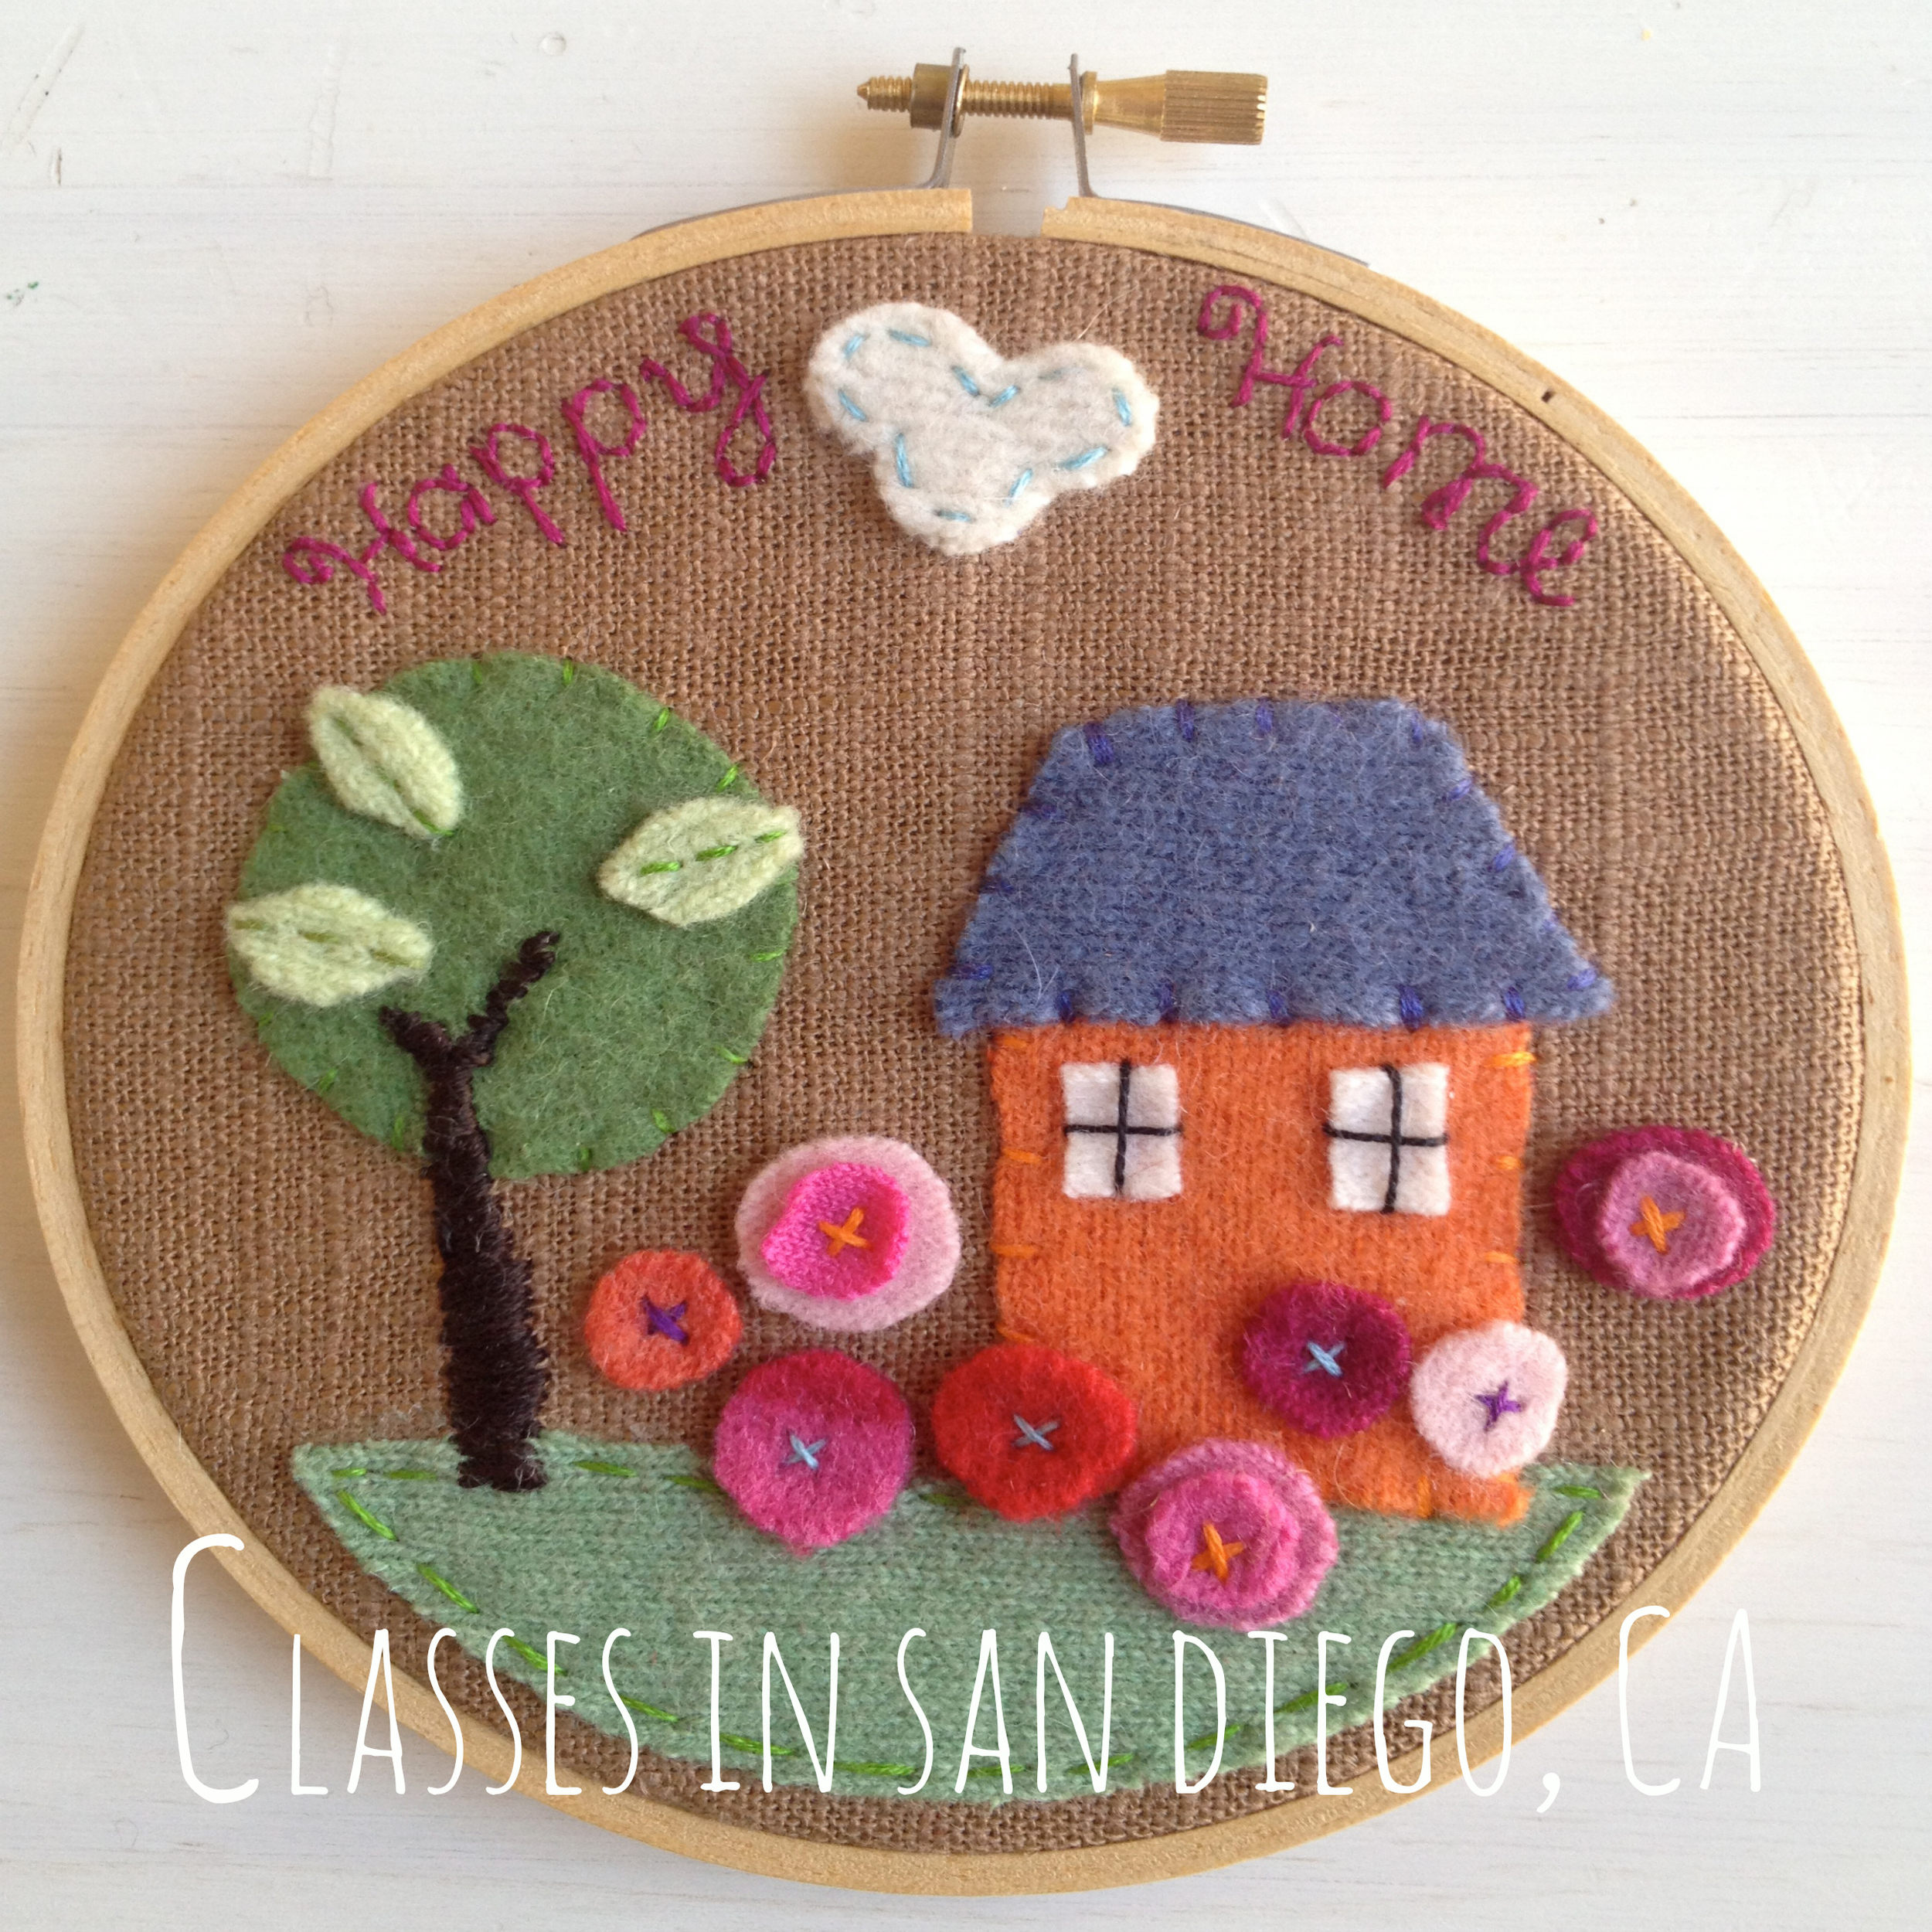 CLICK ON THE IMAGE ABOVE to find out about upcoming classes in San Diego, CA. Classes are taught at my beautiful art and fiber studio located close to the Balboa Park area of San Diego..